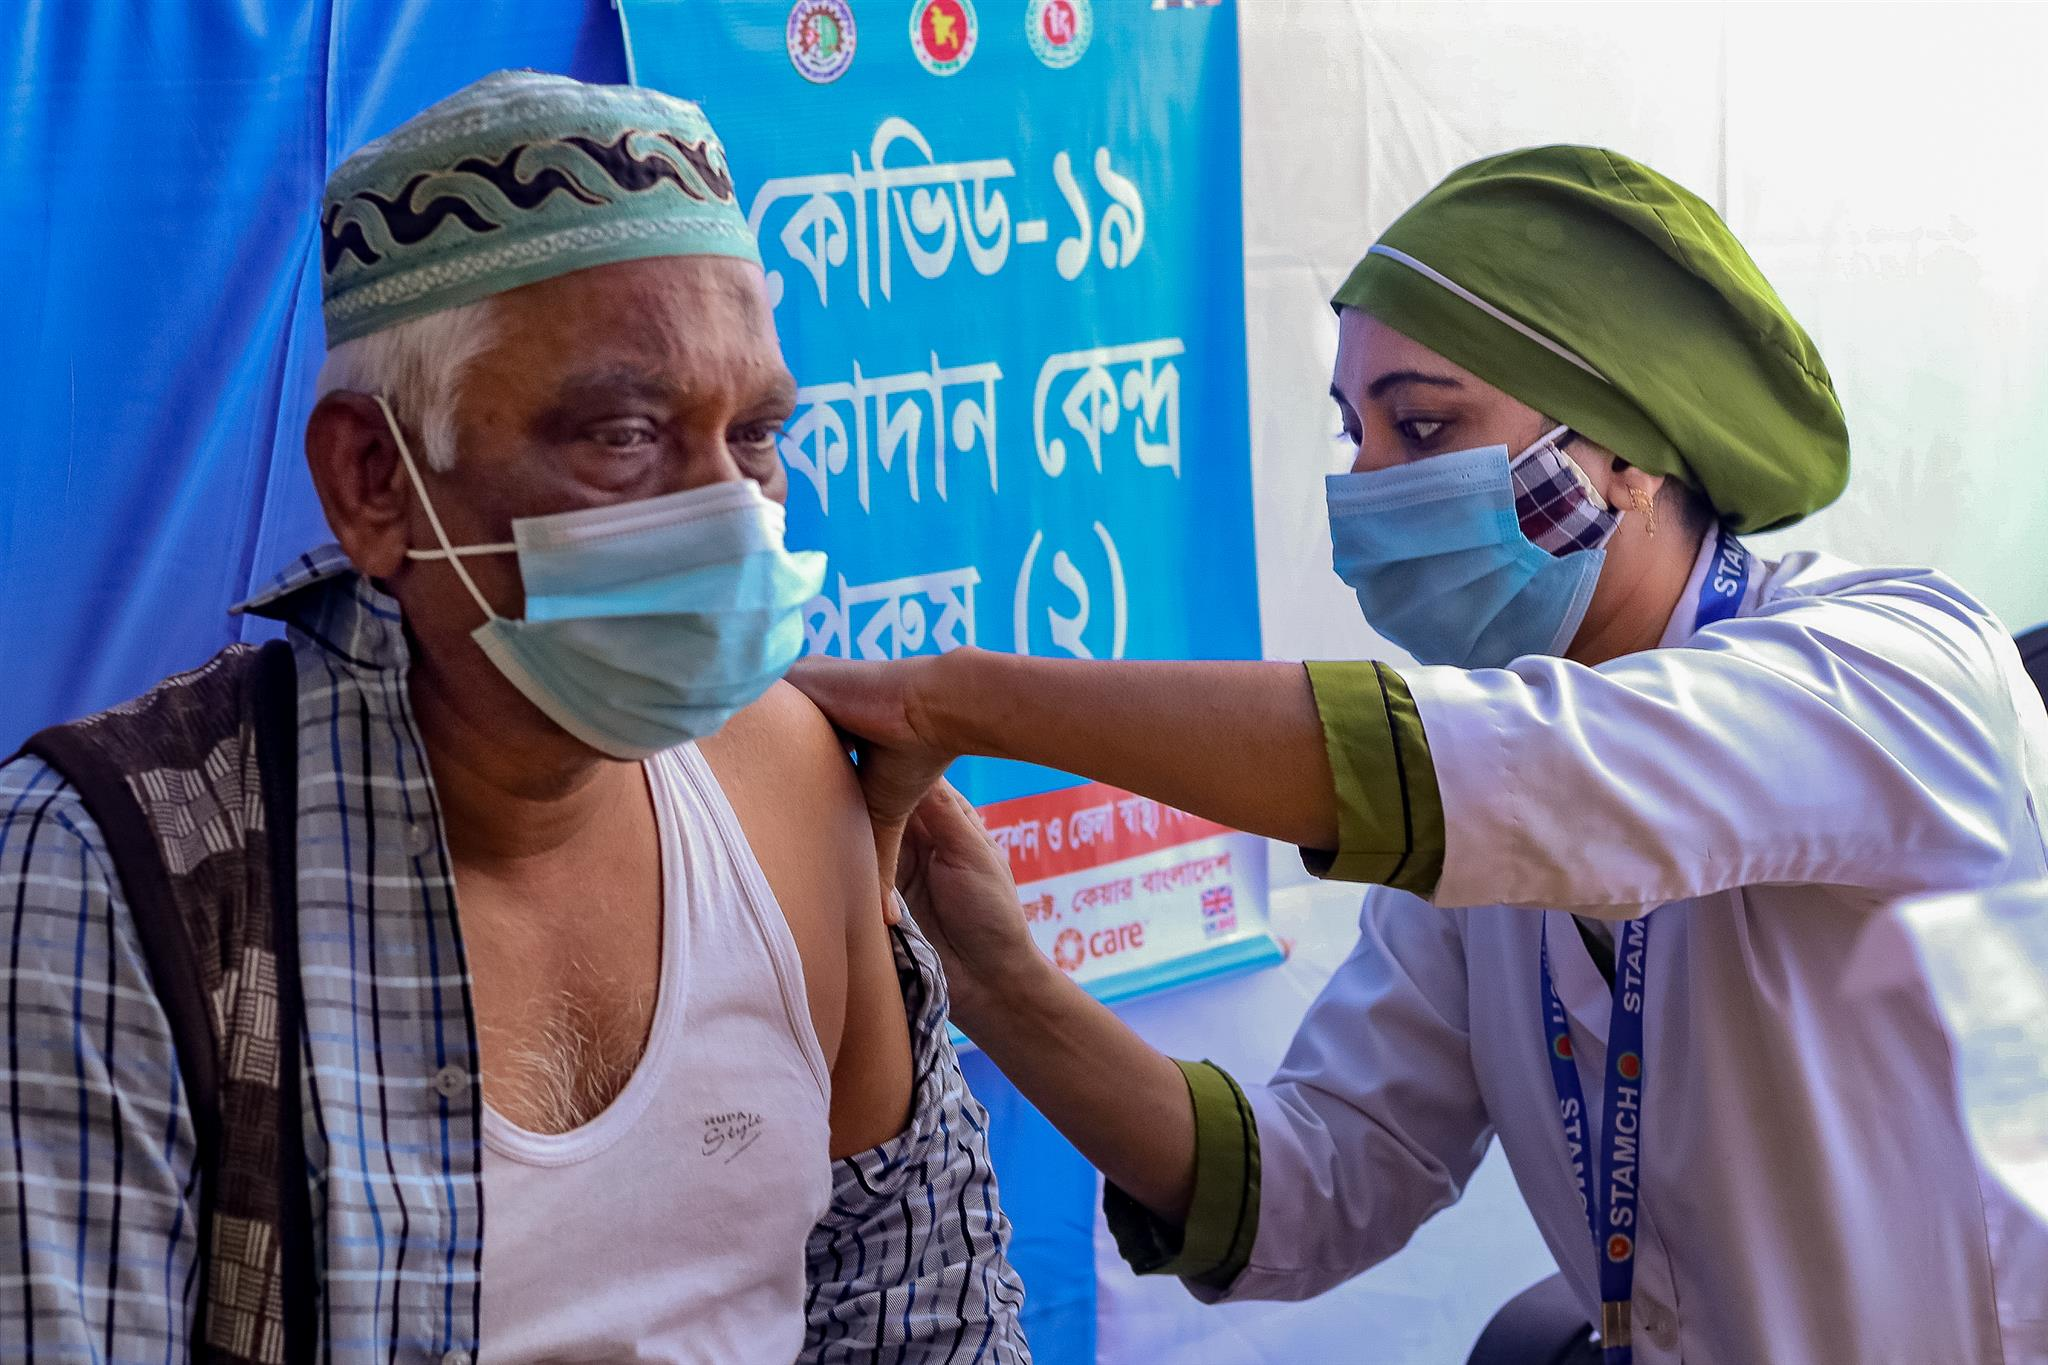 Both wearing masks, a woman health care worker gives a vaccine to a man.